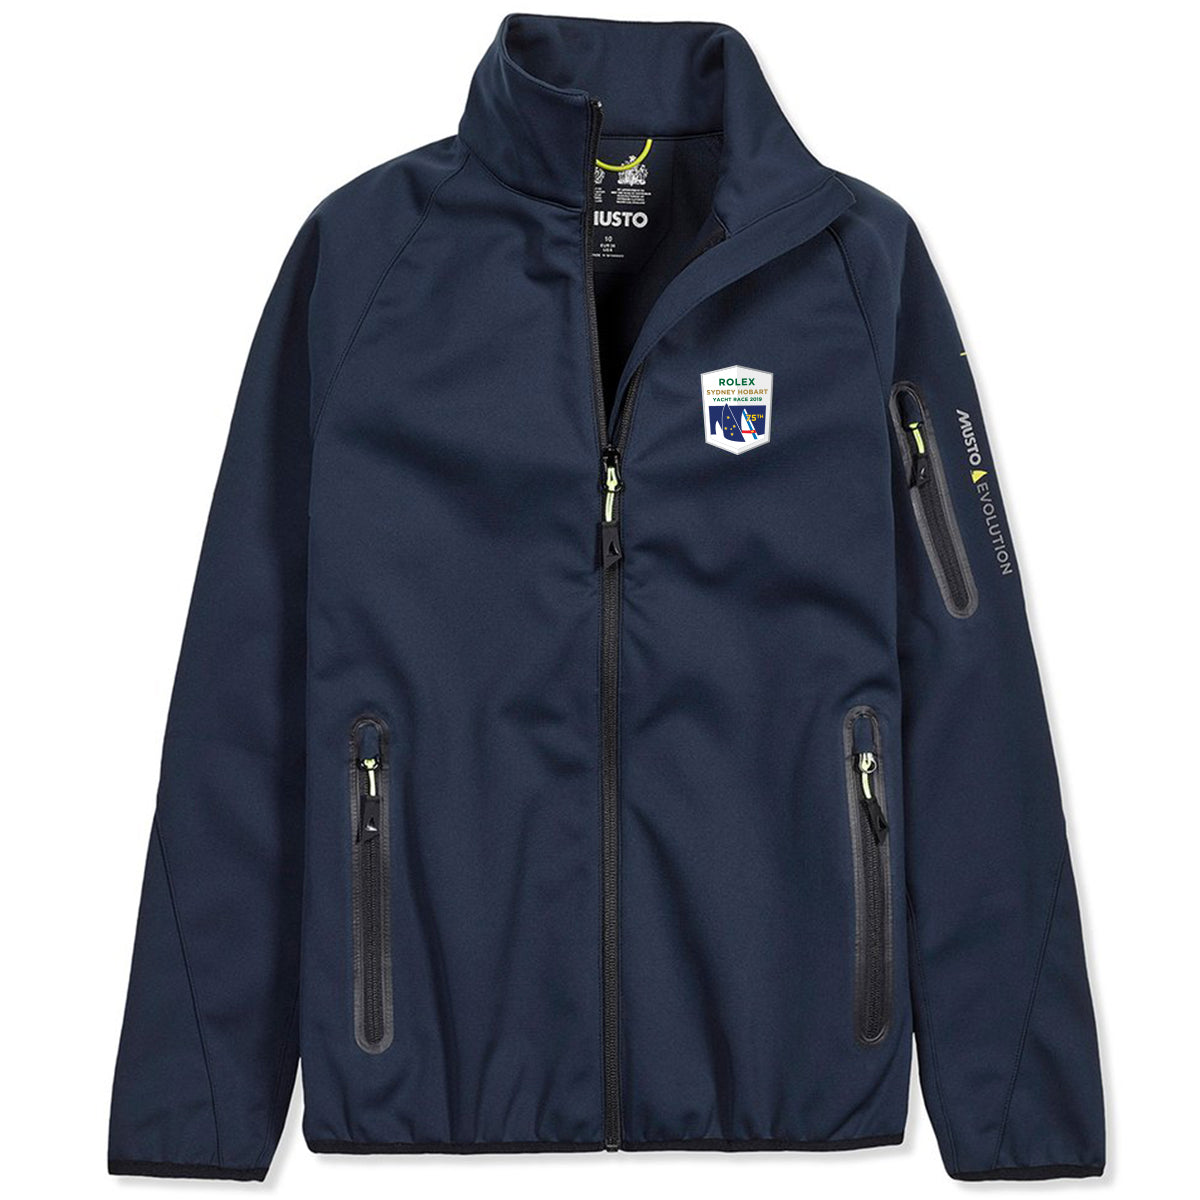 RSHYR19 Women's Crew Soft Shell Jacket